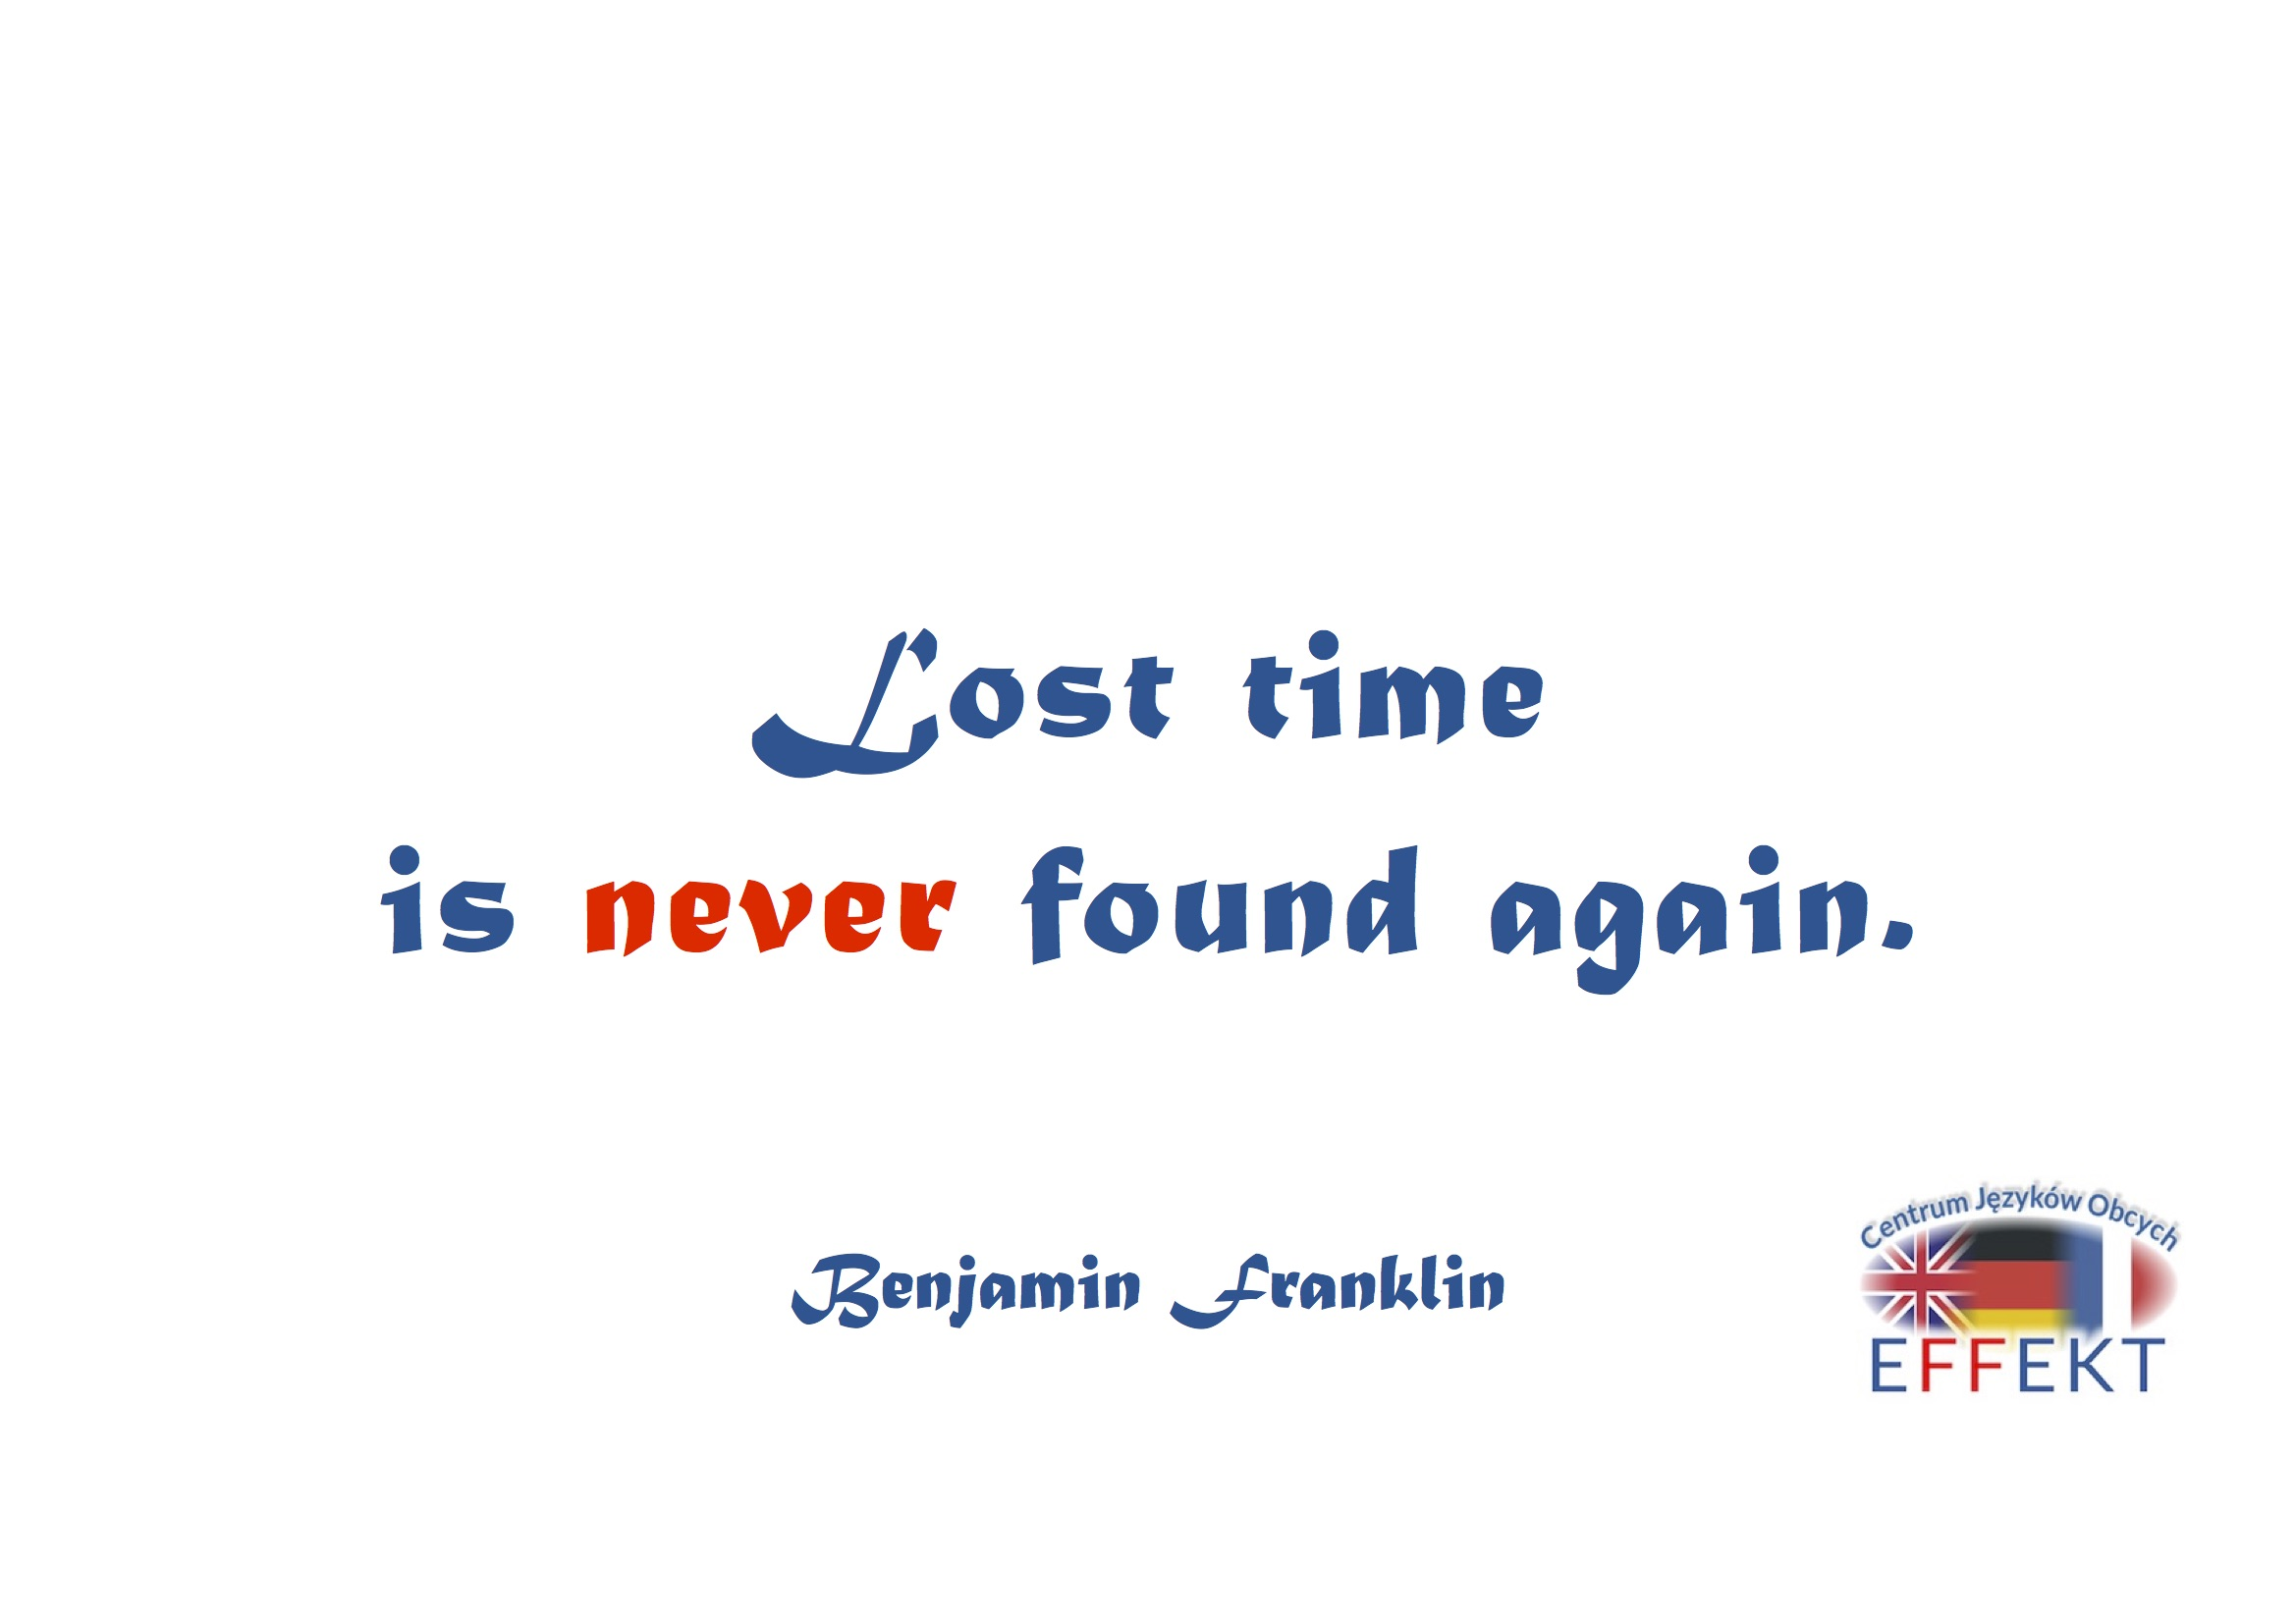 Lost time is never found again